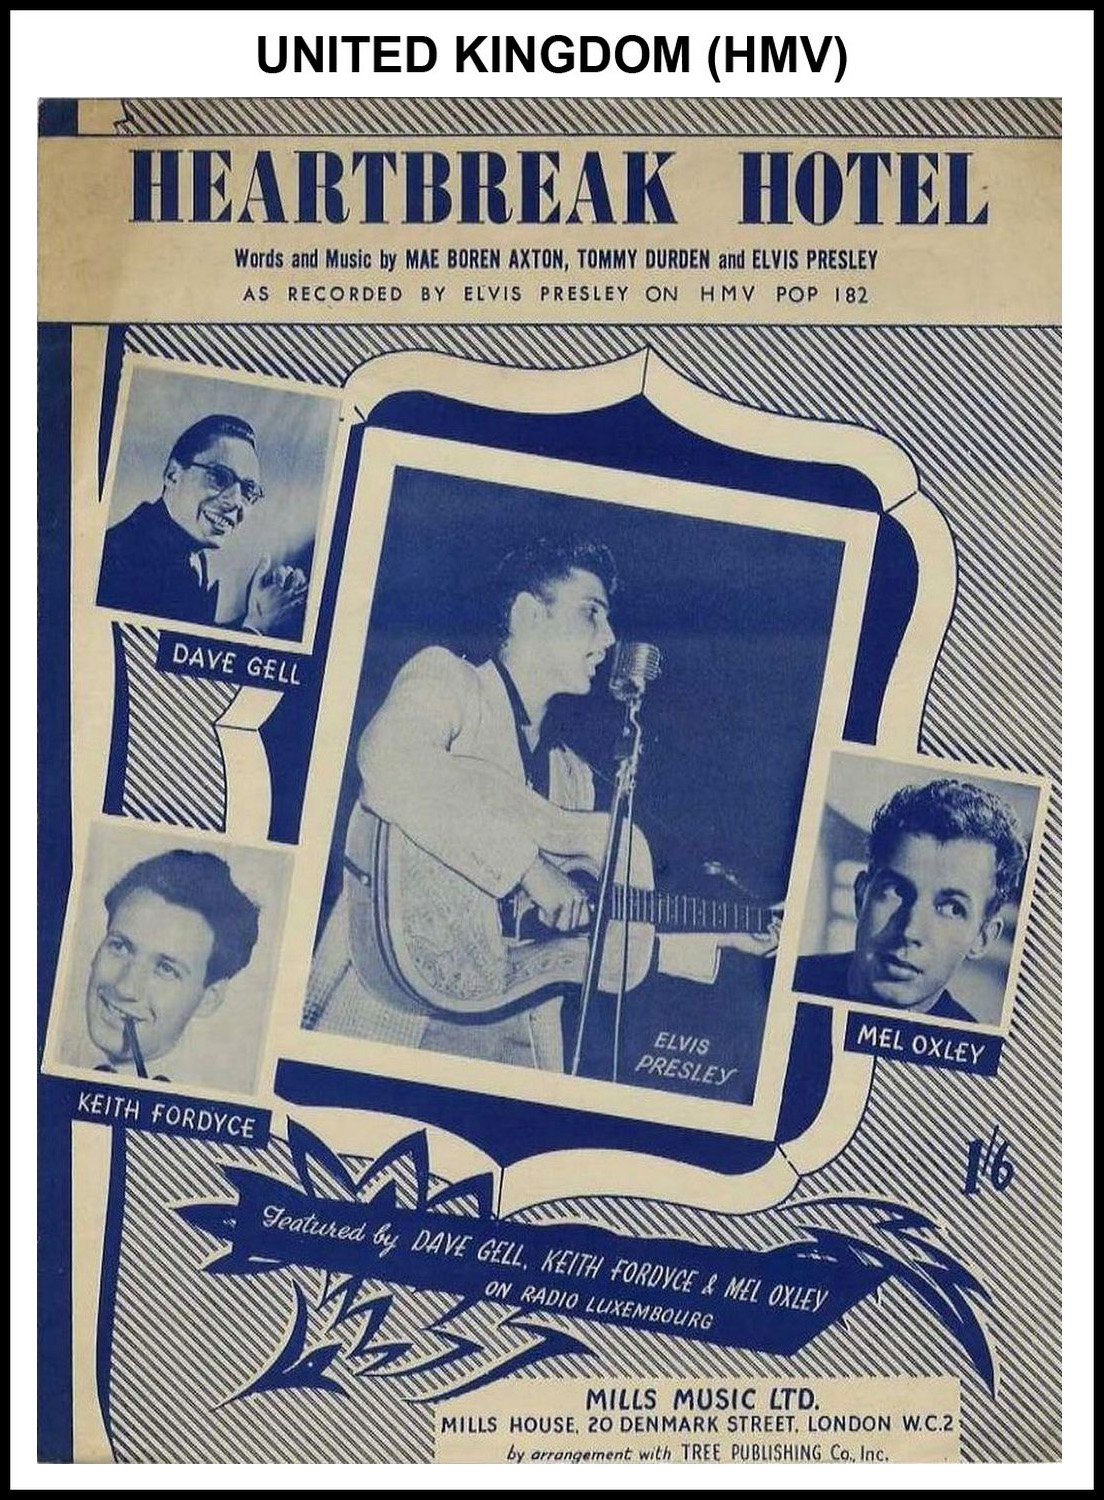 1956 - Heartbreak Hotel (UK, HMV) (CHRIS GILES COLLECTION)